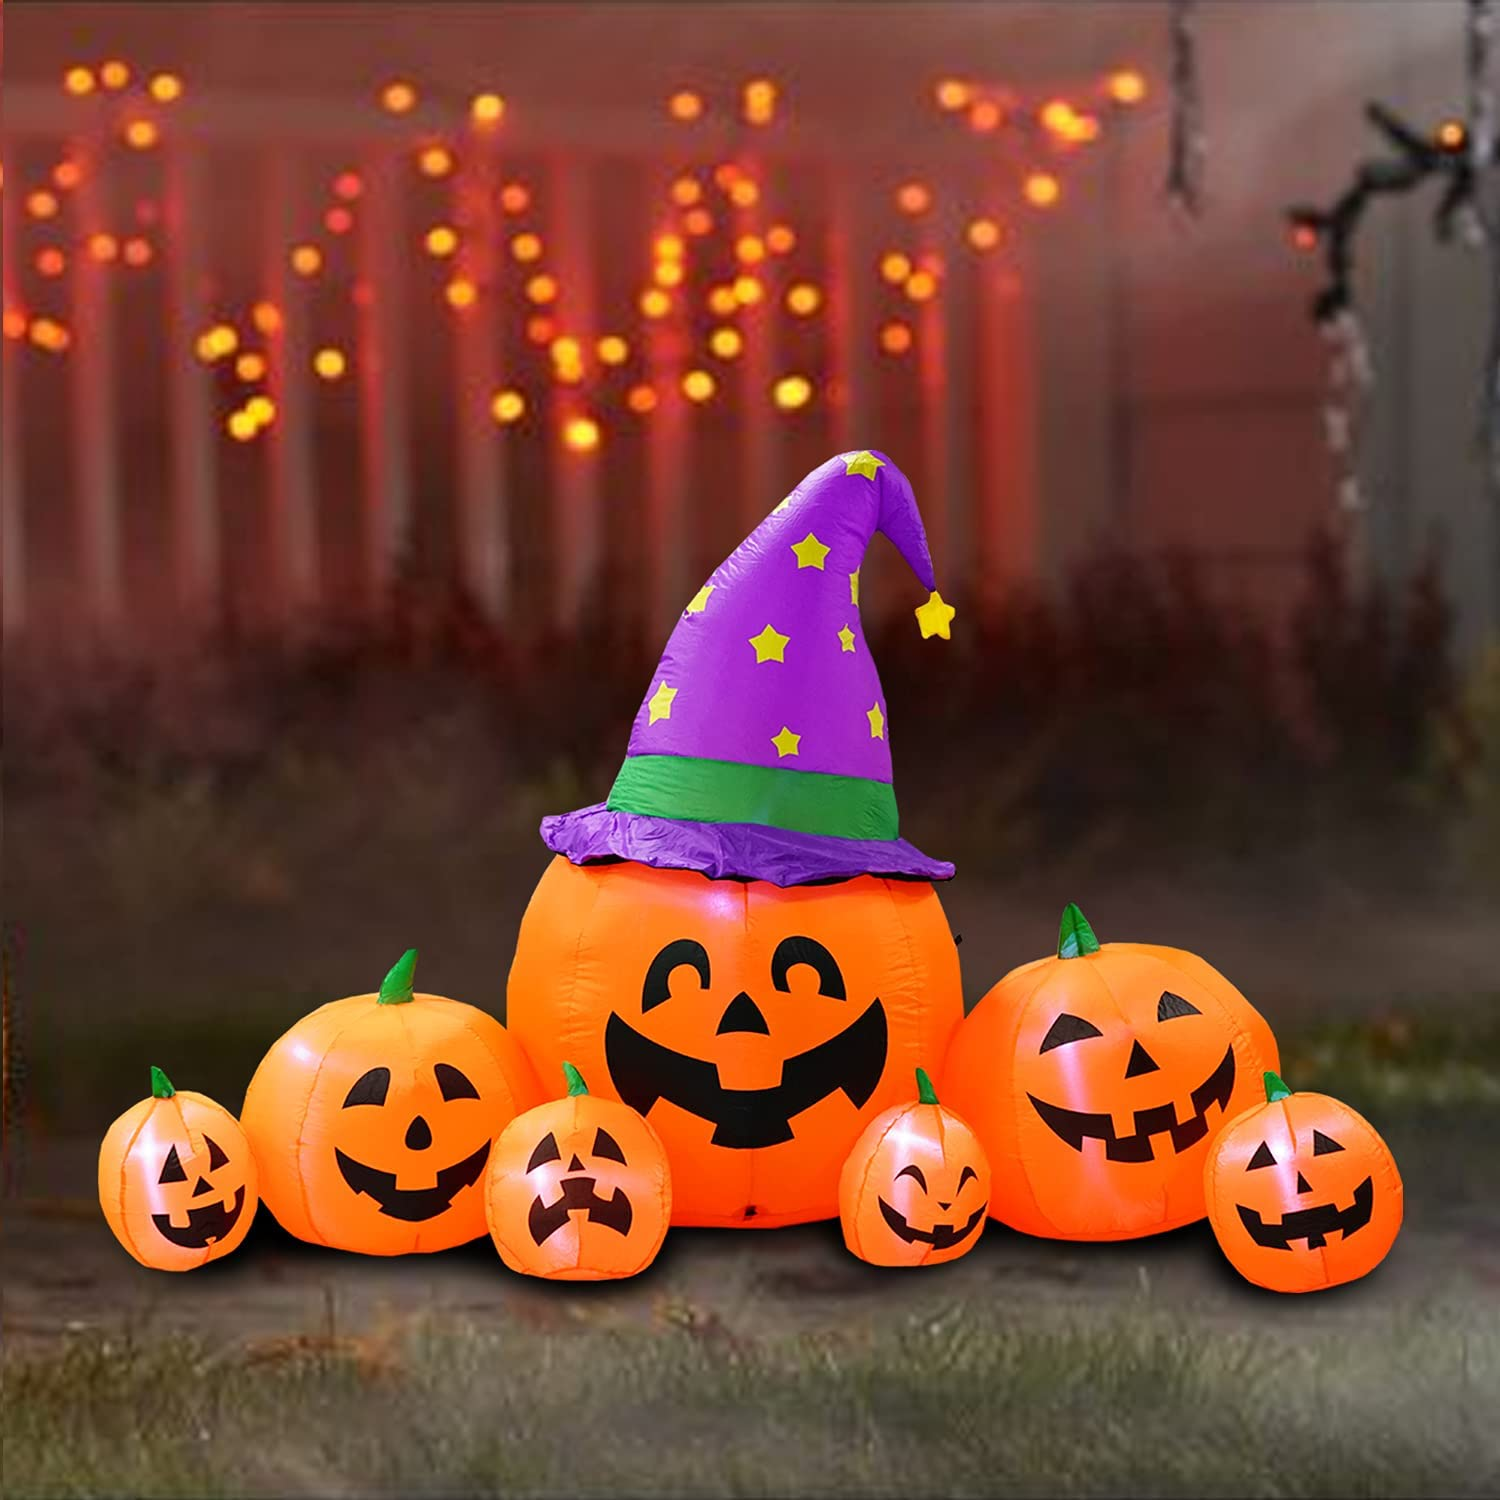 PARAYOYO 8 Ft Halloween Inflatable Pumpkins Lantern Family with Wizard Hat Decoration Lighted Blow Up Inflatables Jack O Lantern for Home Yard Lawn Garden Indoor Outdoor